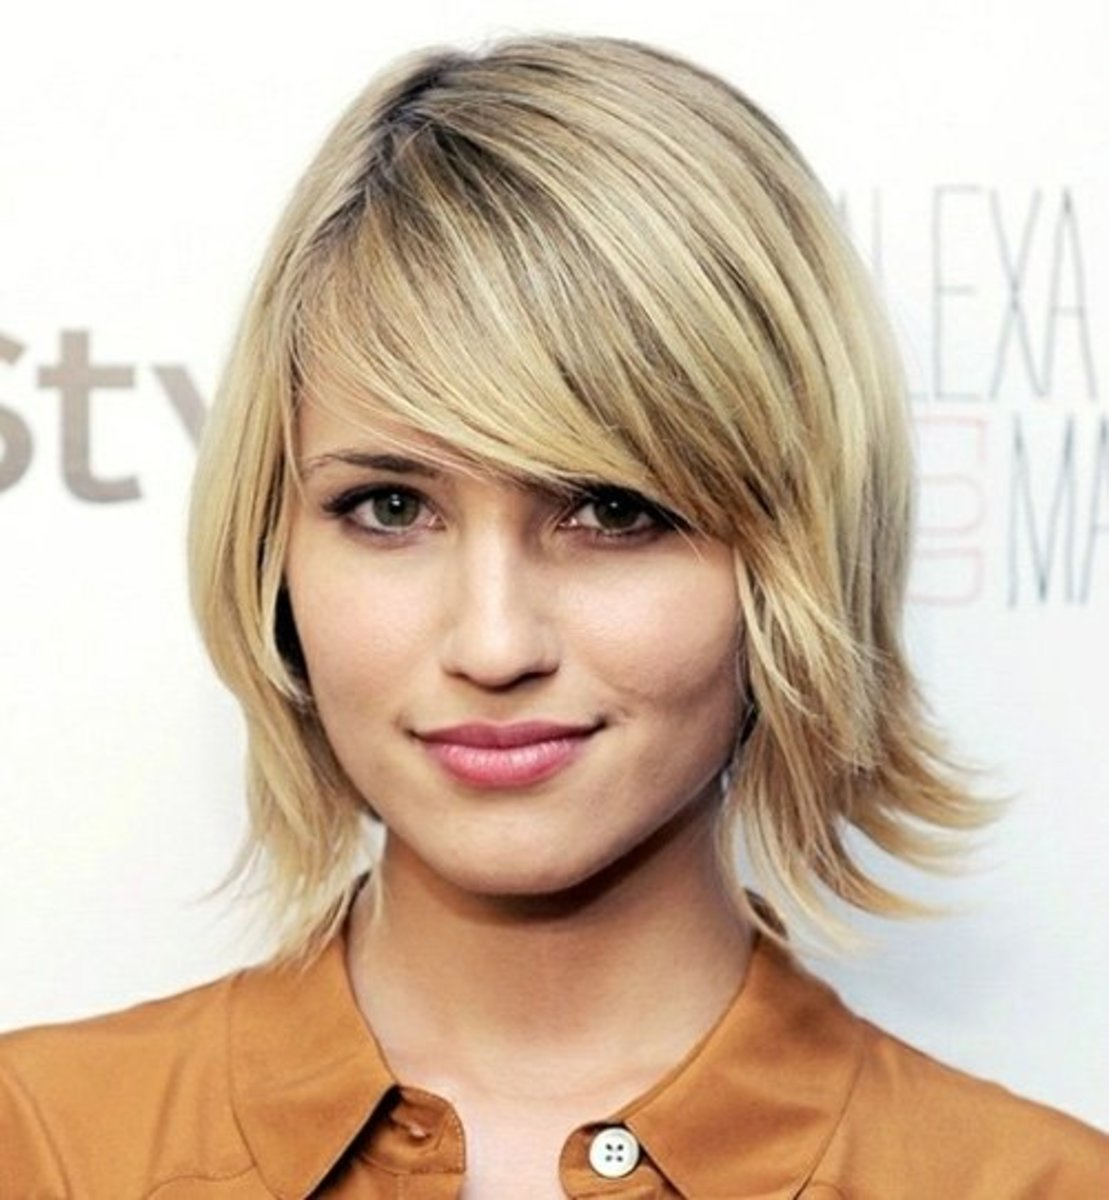 Stylish Short Hair Cuts And Styles For Women Of All Ages Bellatory